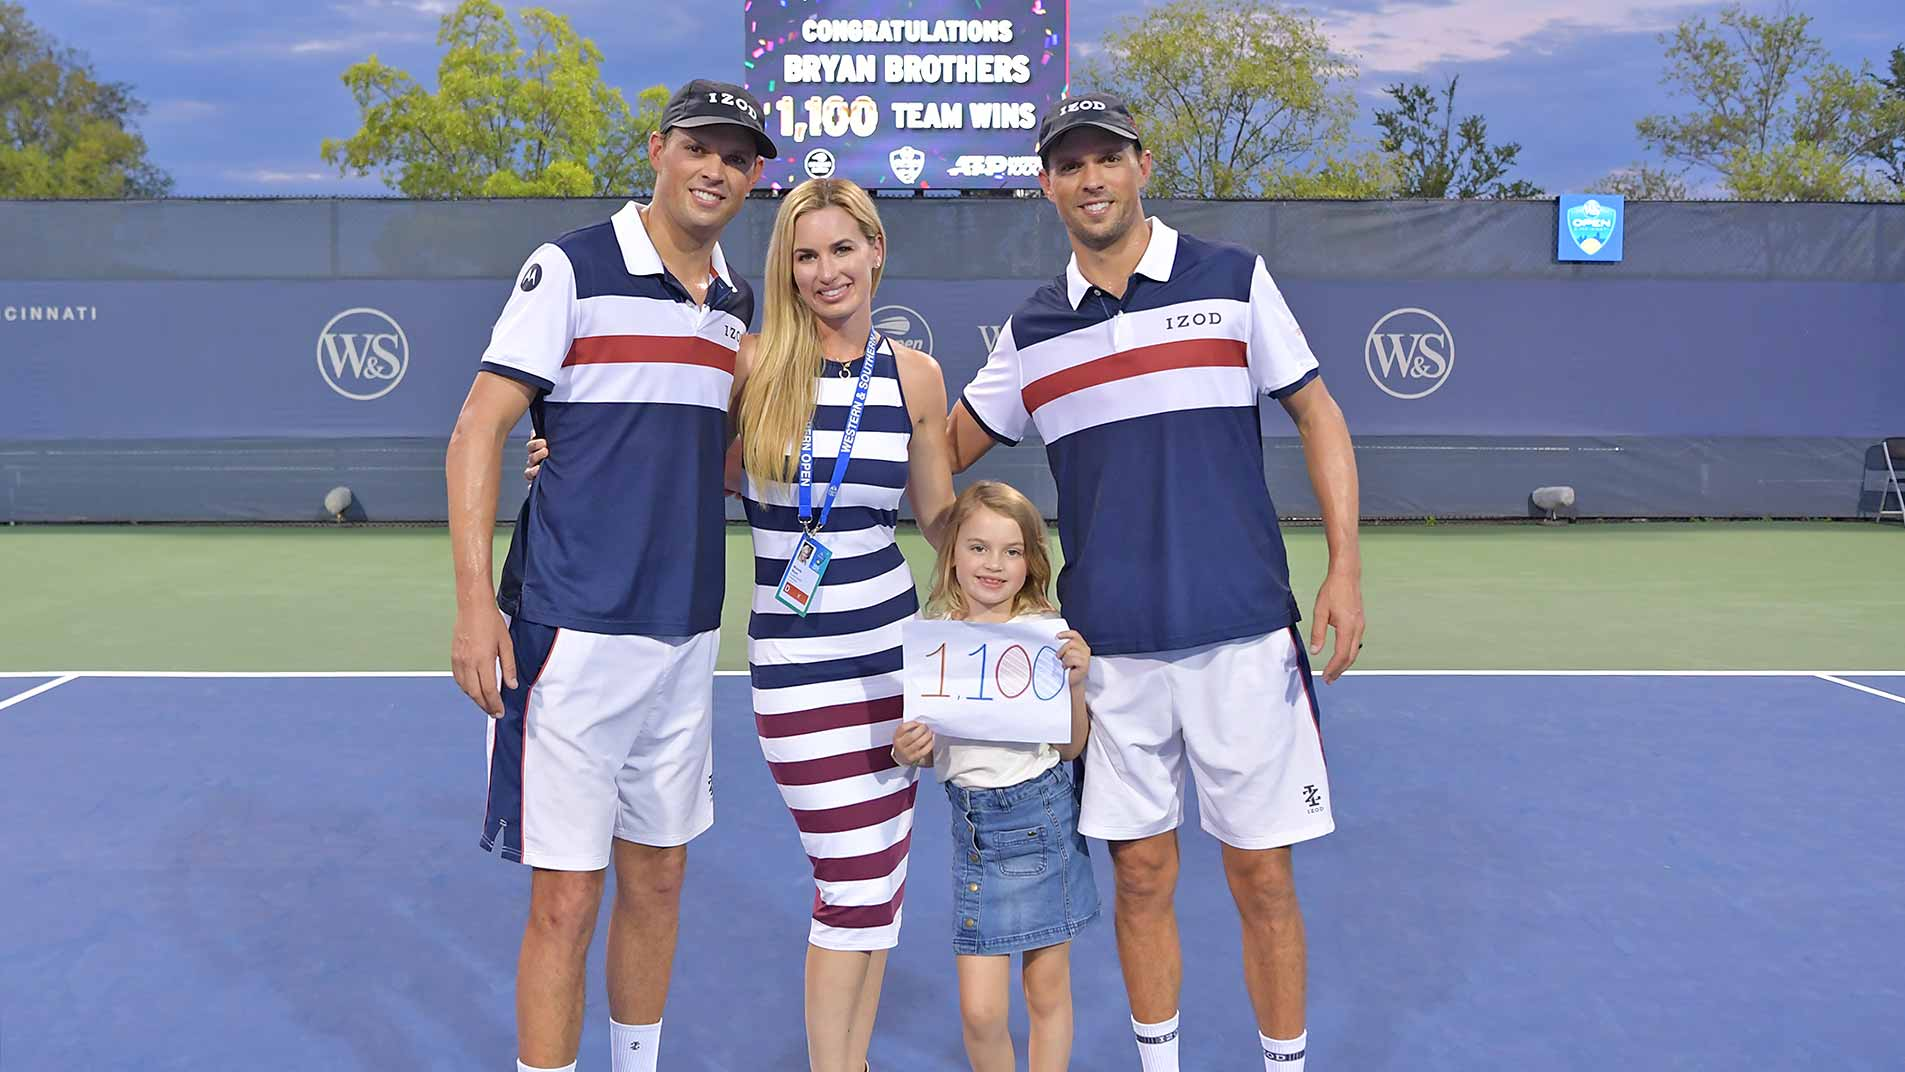 <a href='https://www.atptour.com/en/players/bob-bryan/b588/overview'>Bob Bryan</a> with wife Michelle, daughter Micaela and brother <a href='https://www.atptour.com/en/players/mike-bryan/b589/overview'>Mike Bryan</a>, celebrating the Bryan brothers' 1100th team win.